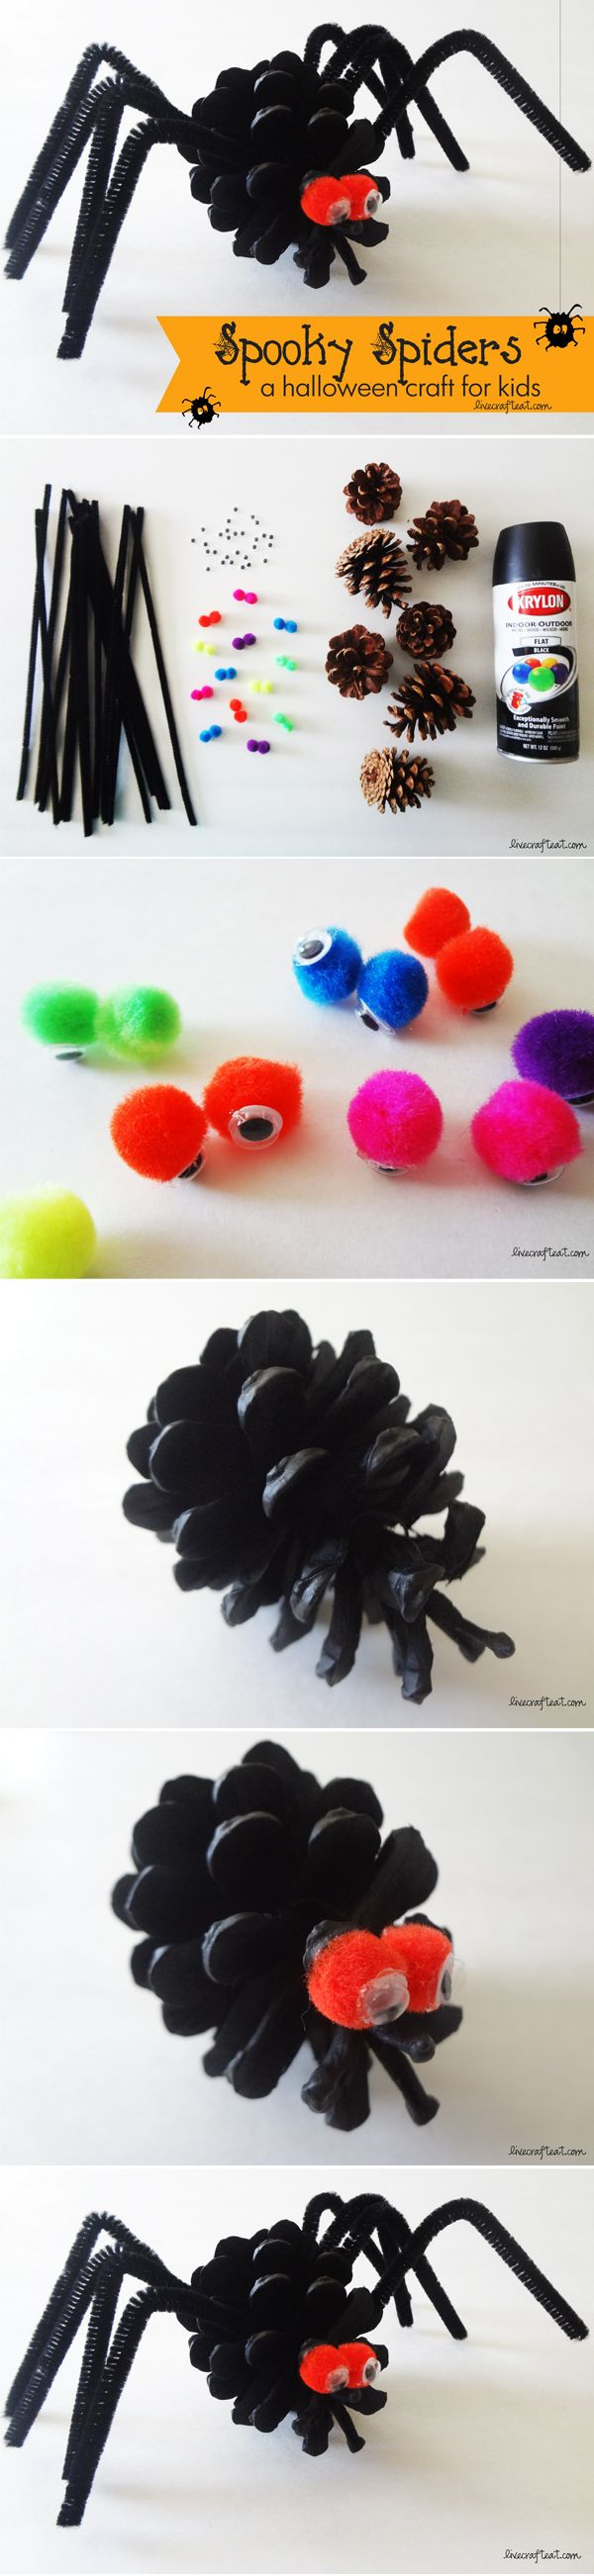 most creative and adorable pine cone crafts   ofriendly